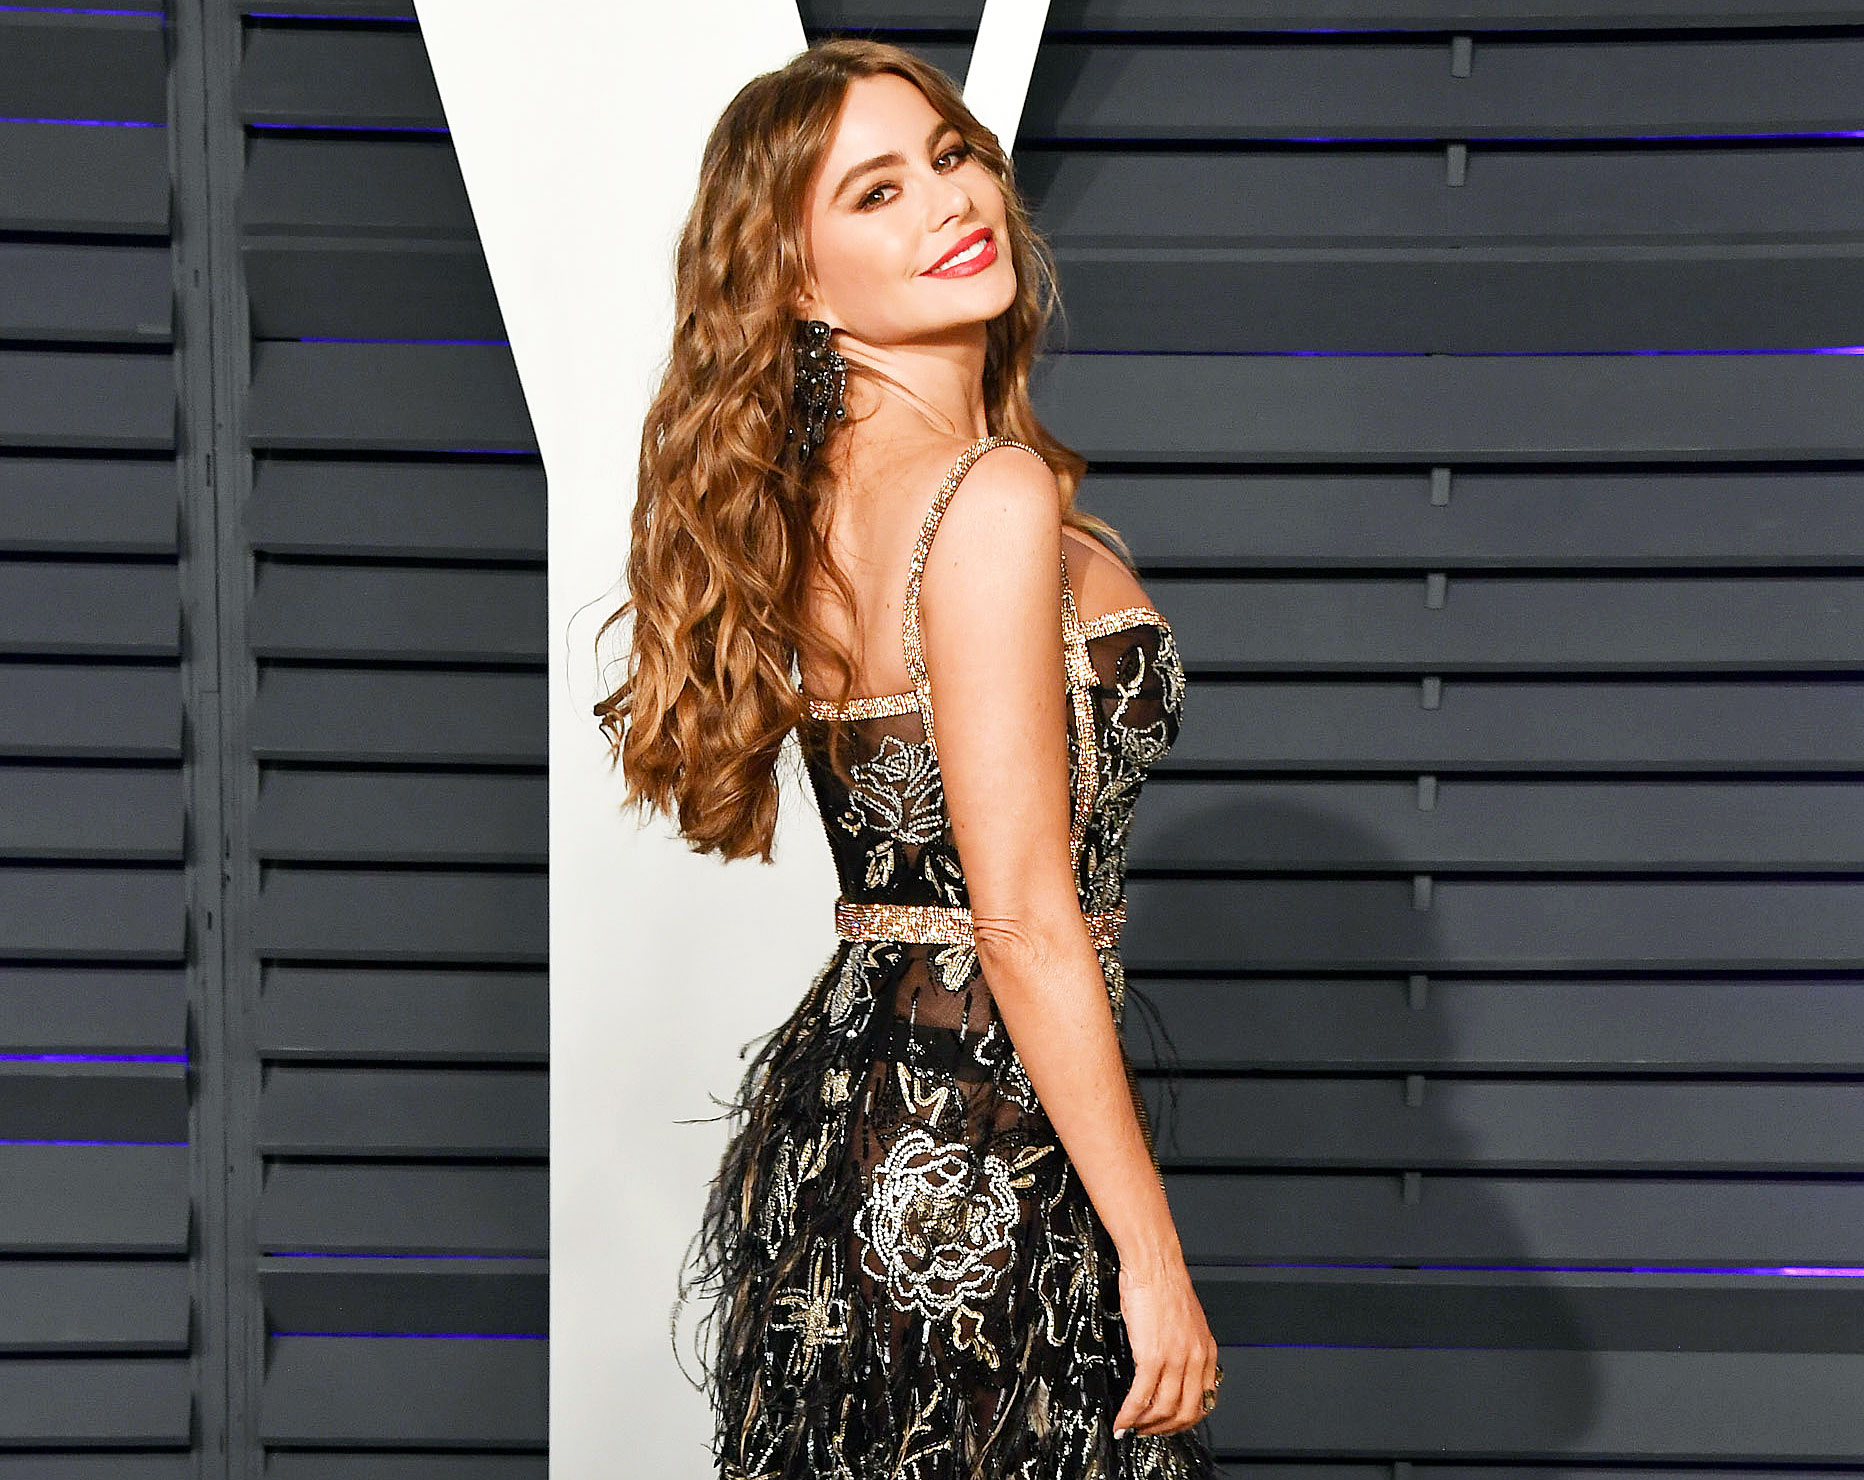 Sofia Vergara EBY Shapewear Comfortable - Sofia Vergara attends the Vanity Fair Oscar Party at Wallis Annenberg Center for the Performing Arts on February 24, 2019 in Beverly Hills.